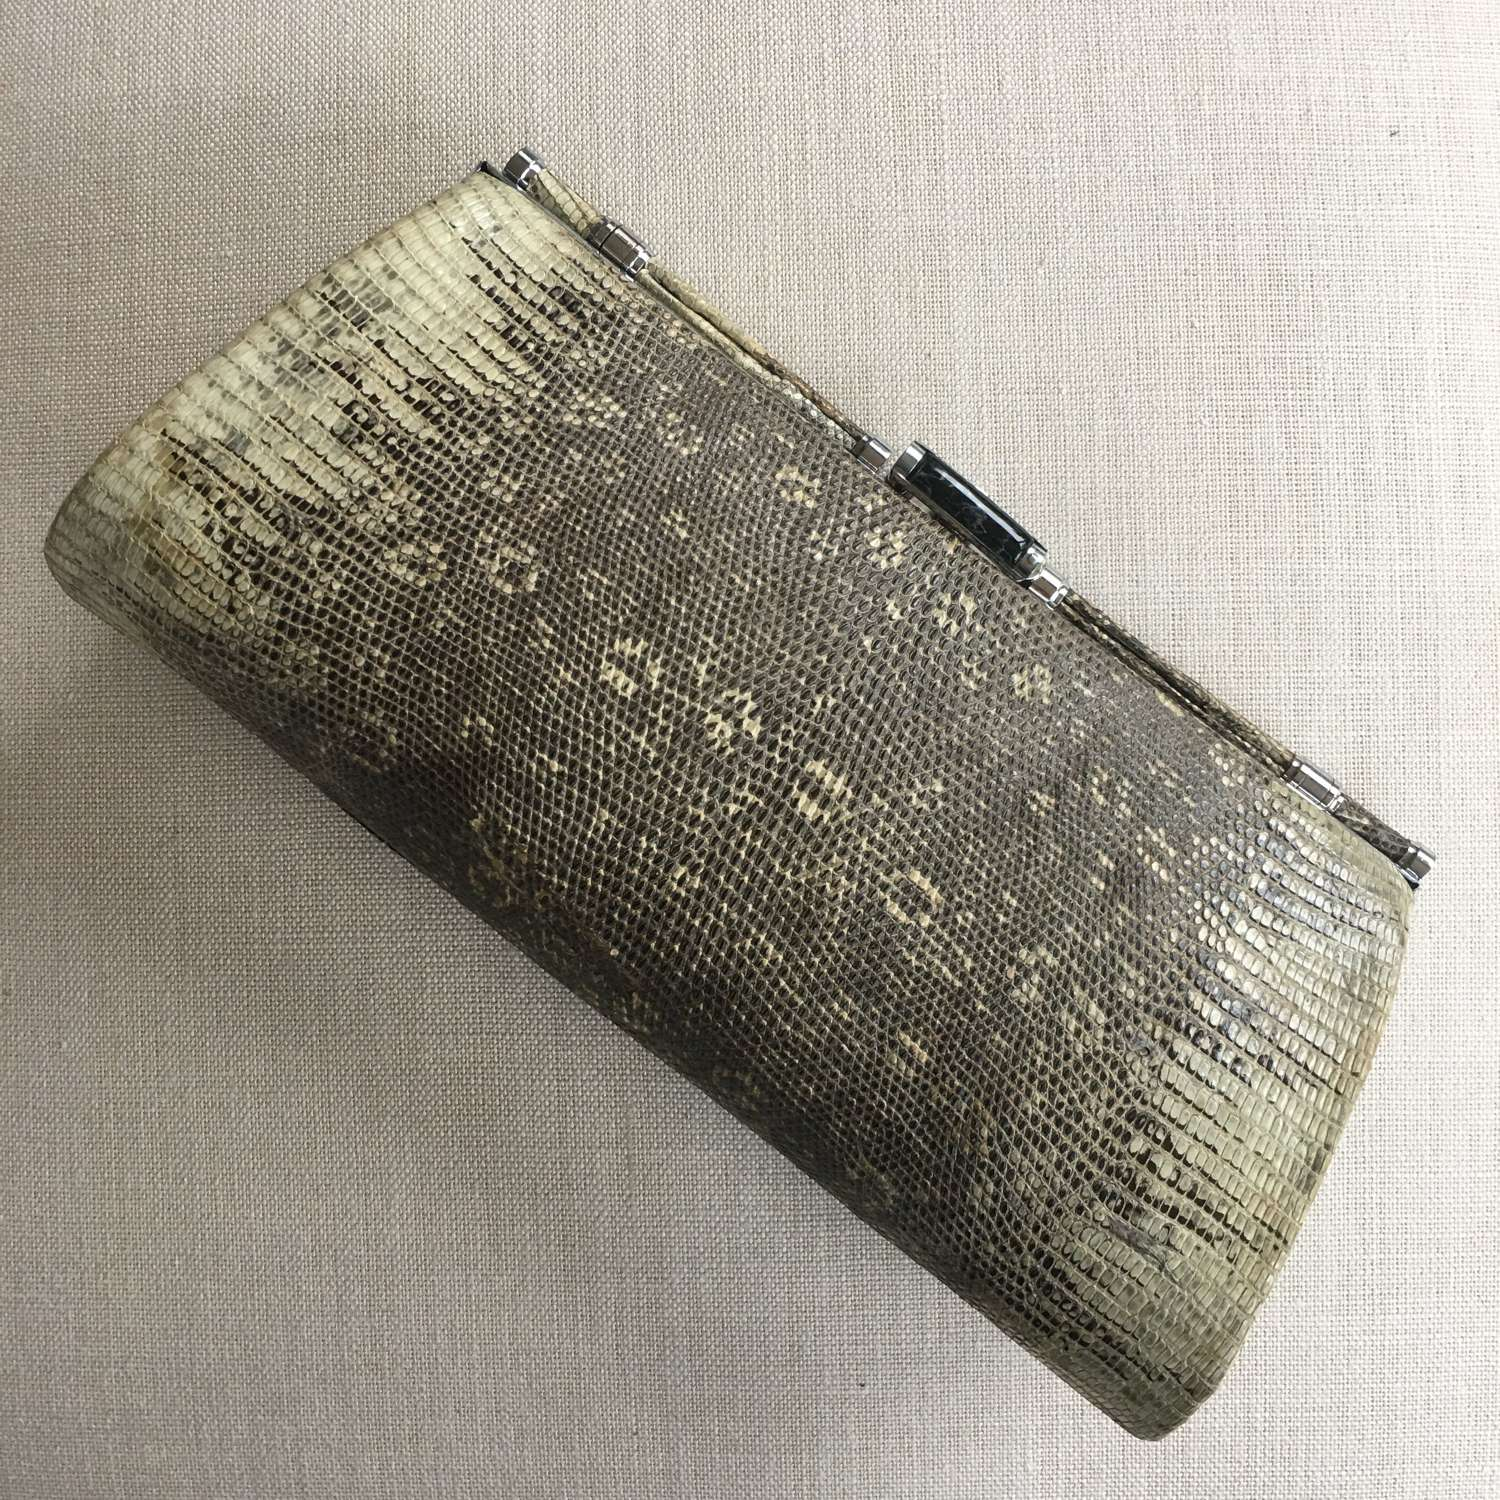 Vintage 1930s monitor lizard skin clutch bag